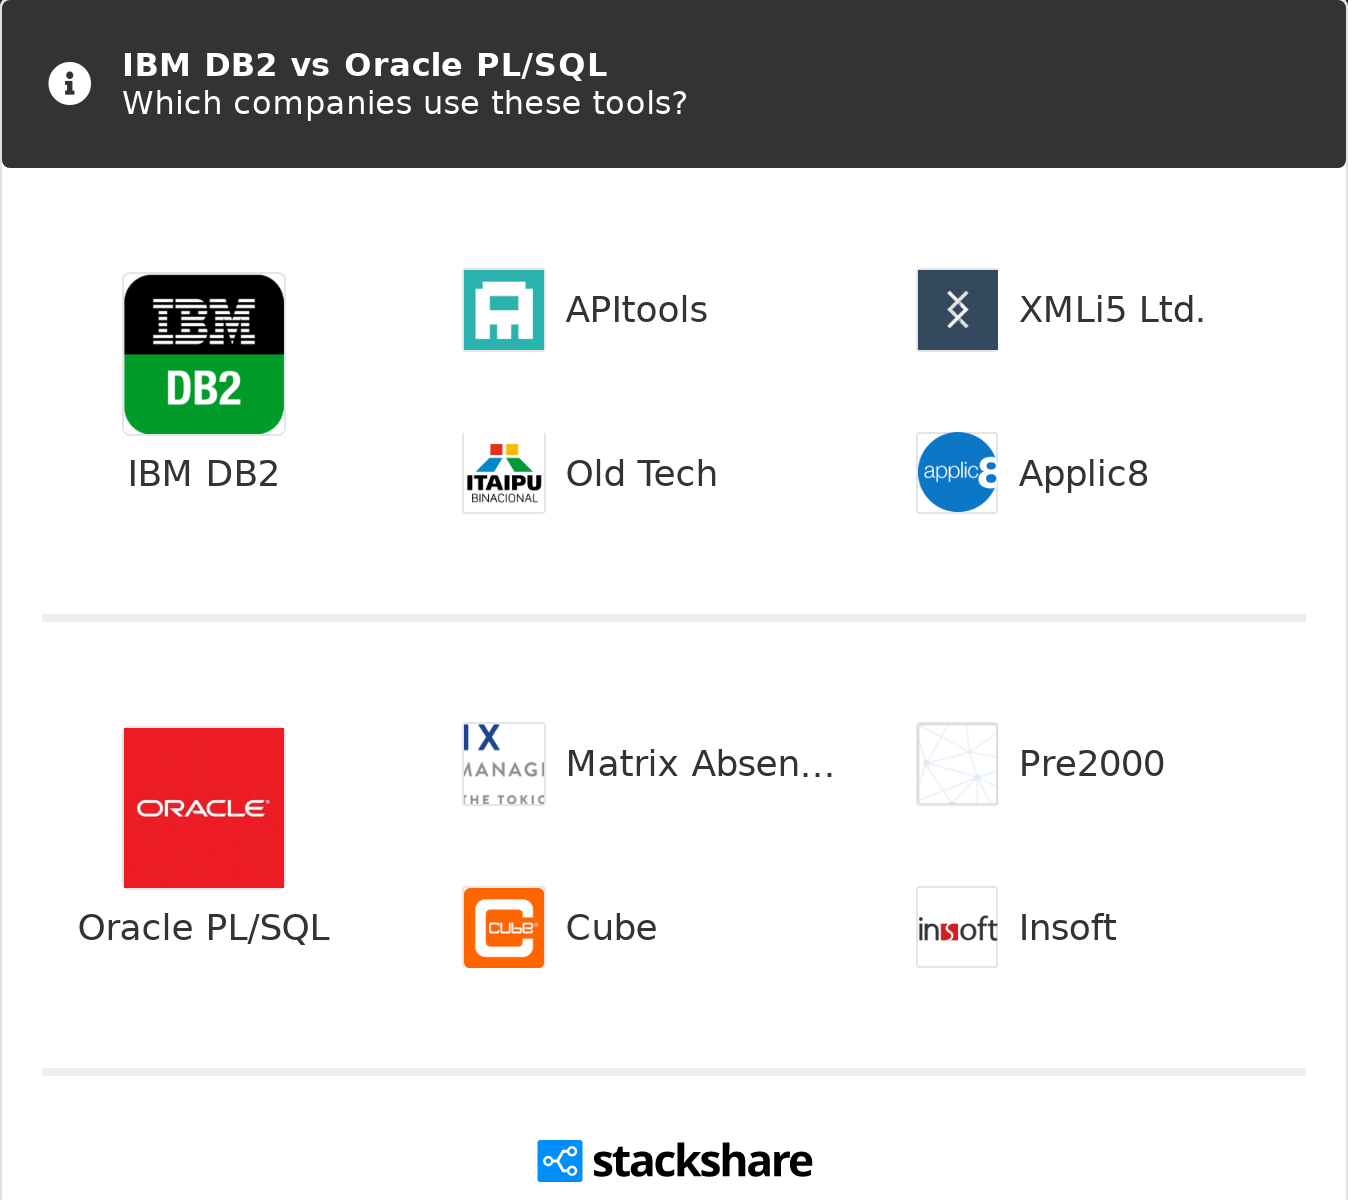 IBM DB2 vs Oracle PL/SQL | What are the differences?